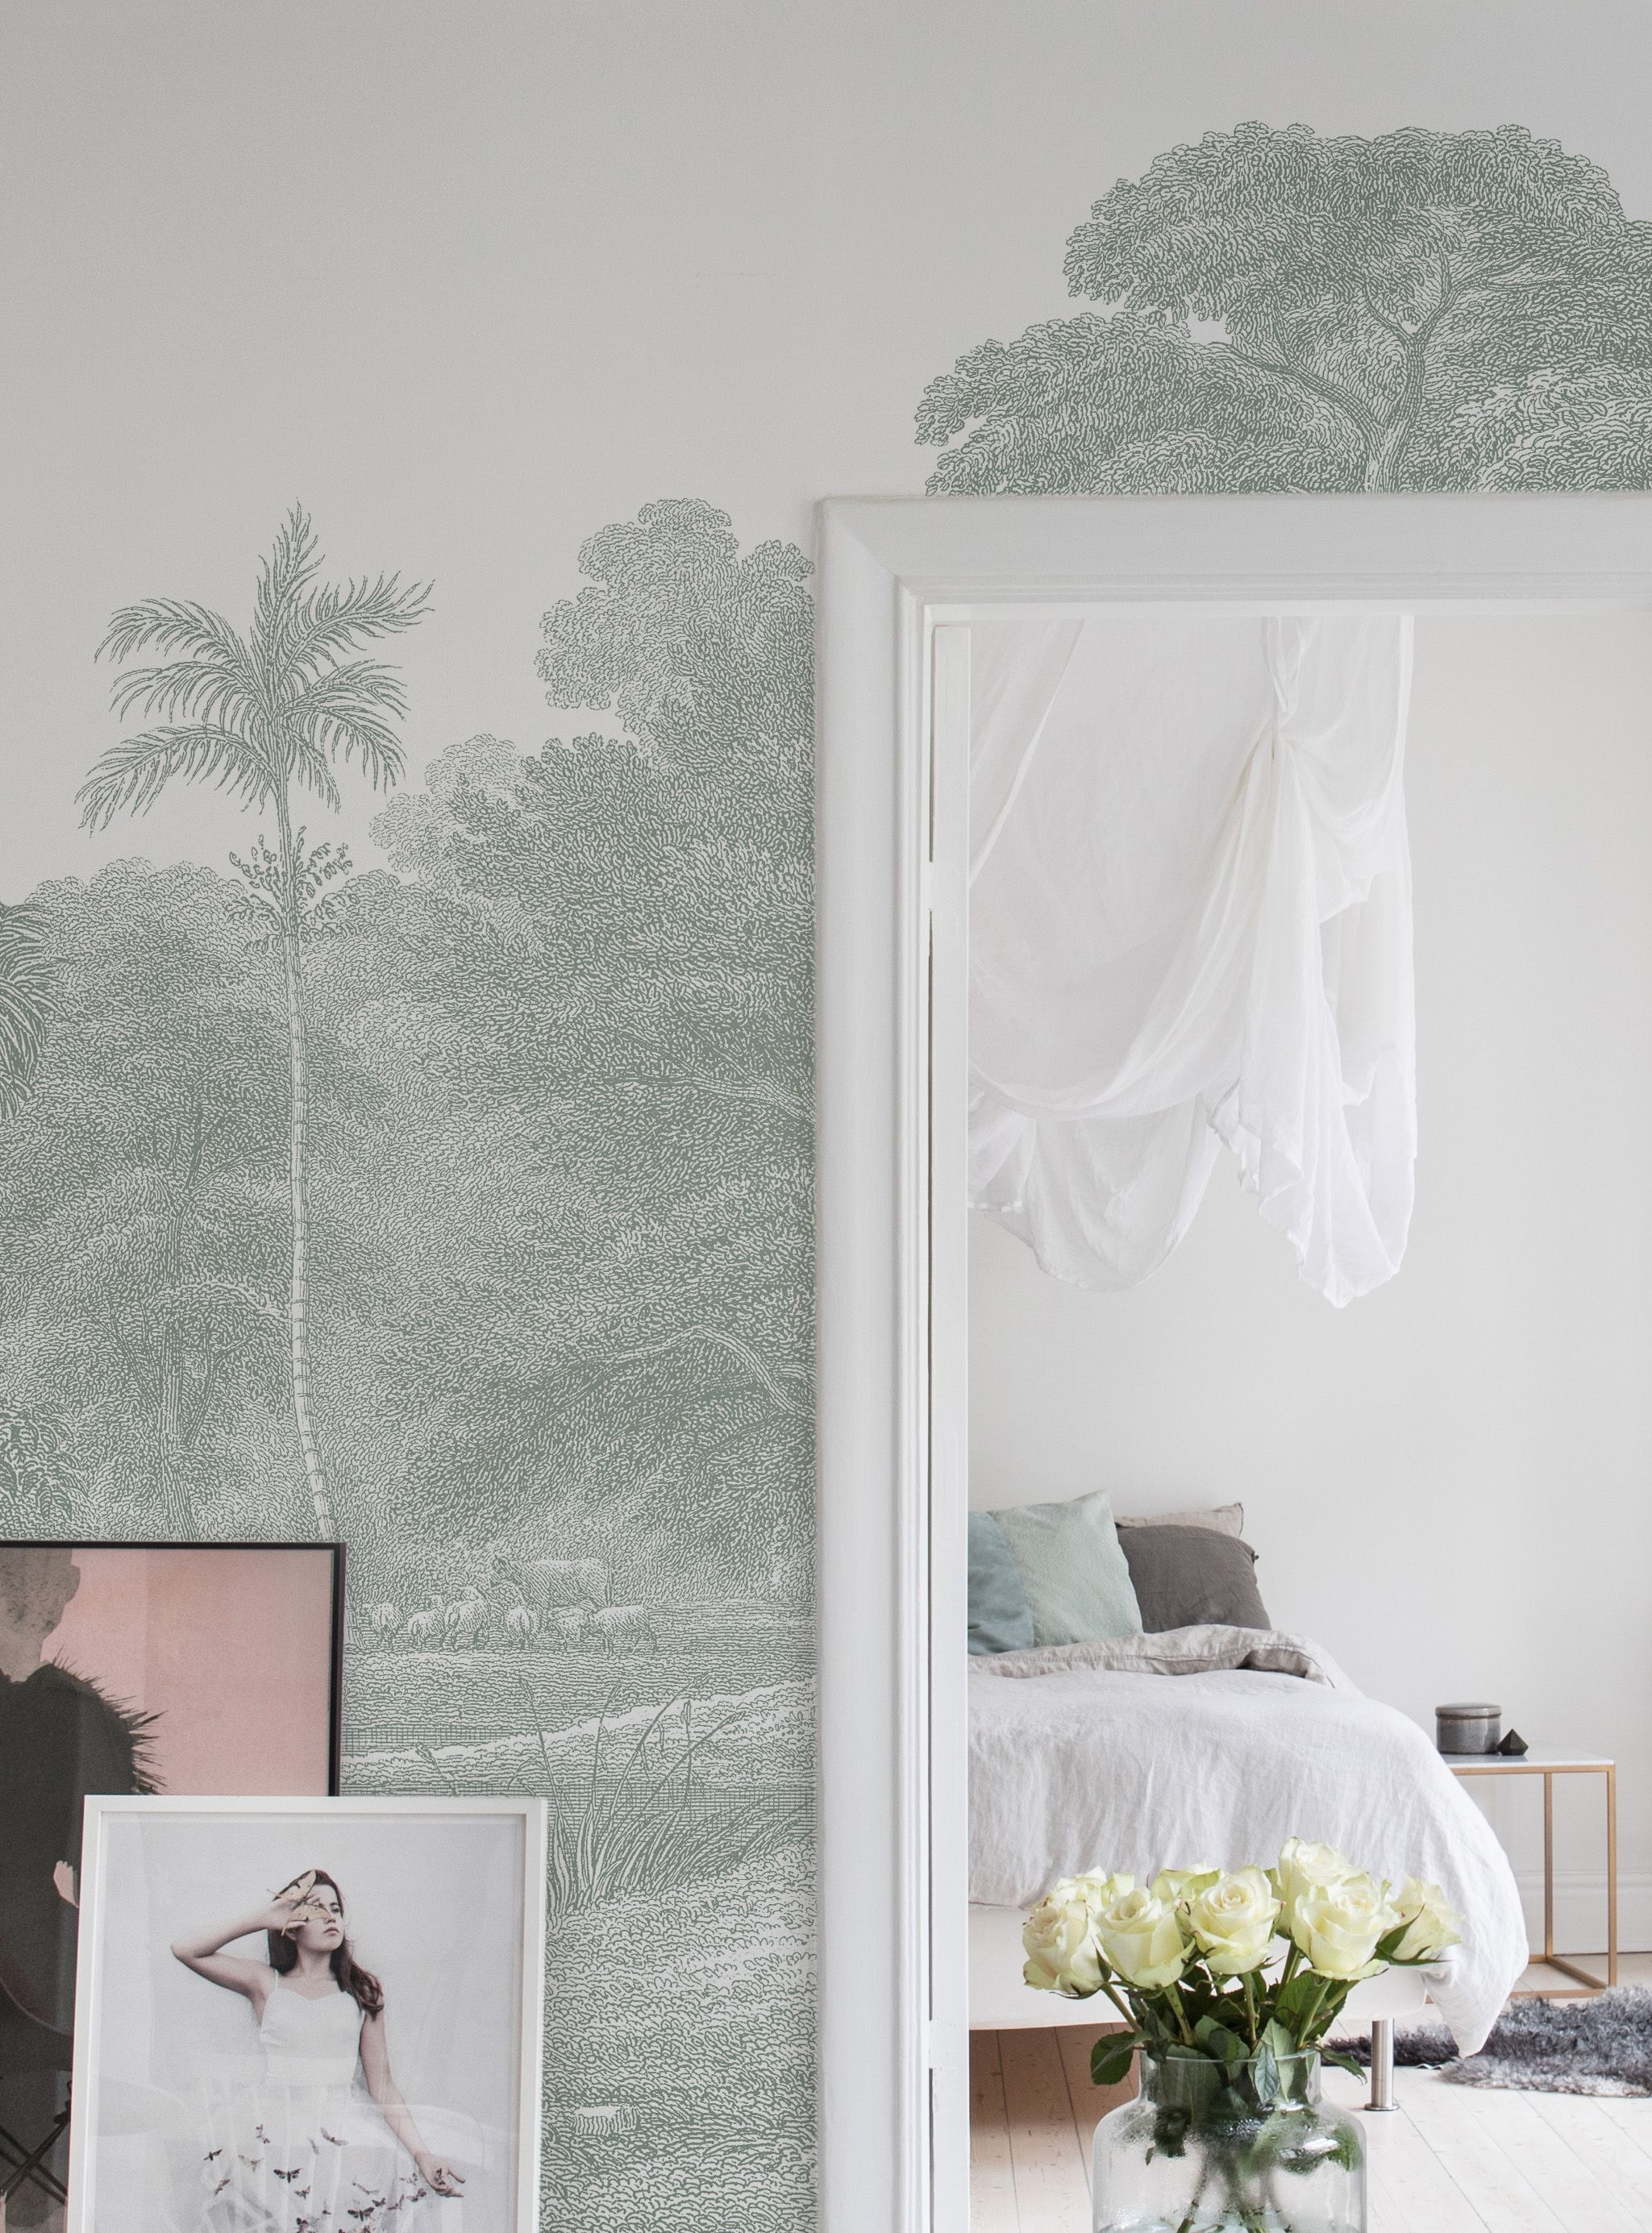 jungle land verdant tapeten f r 39 s schlafzimmer. Black Bedroom Furniture Sets. Home Design Ideas